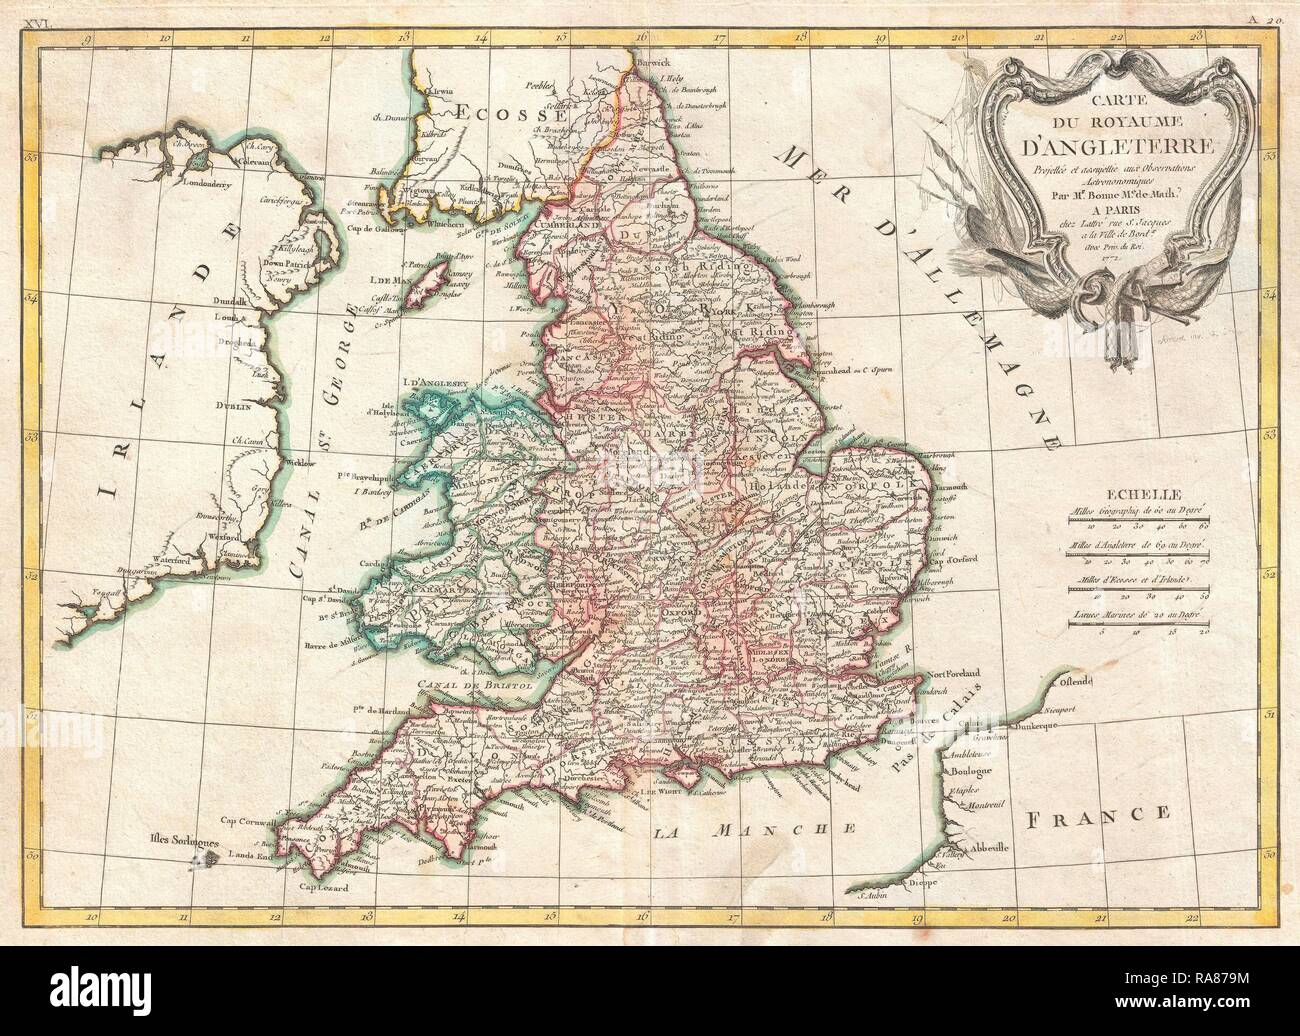 Wales England Map 18th Stock Photos Wales England Map 18th Stock